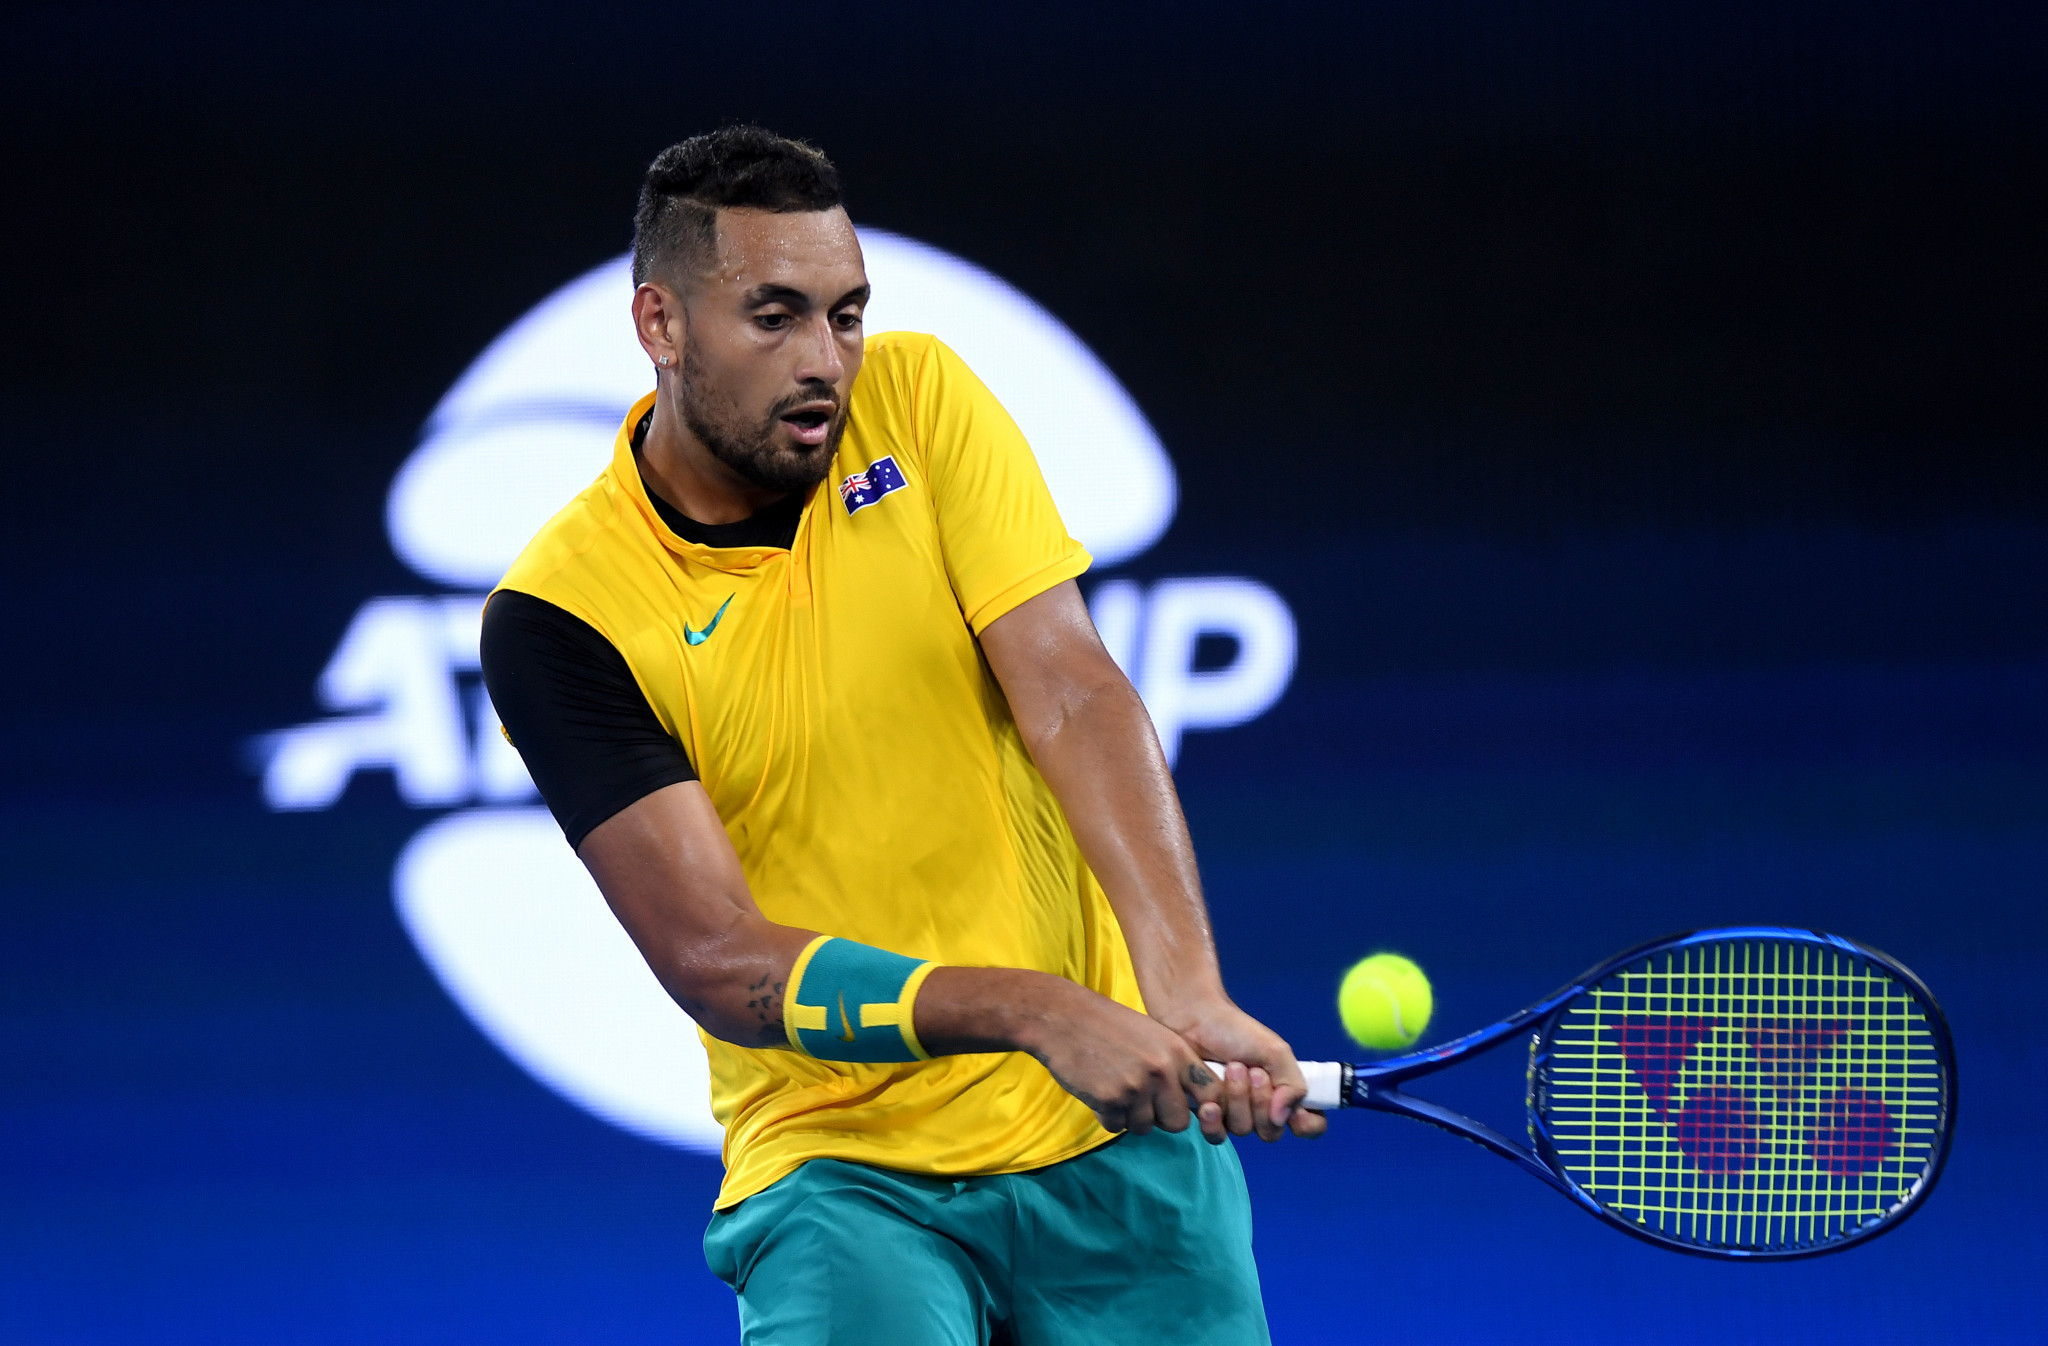 Australian tennis player Nick Kyrgios used his platform at the ATP Cup to raise awareness about the bush fires in his country ©Getty Images